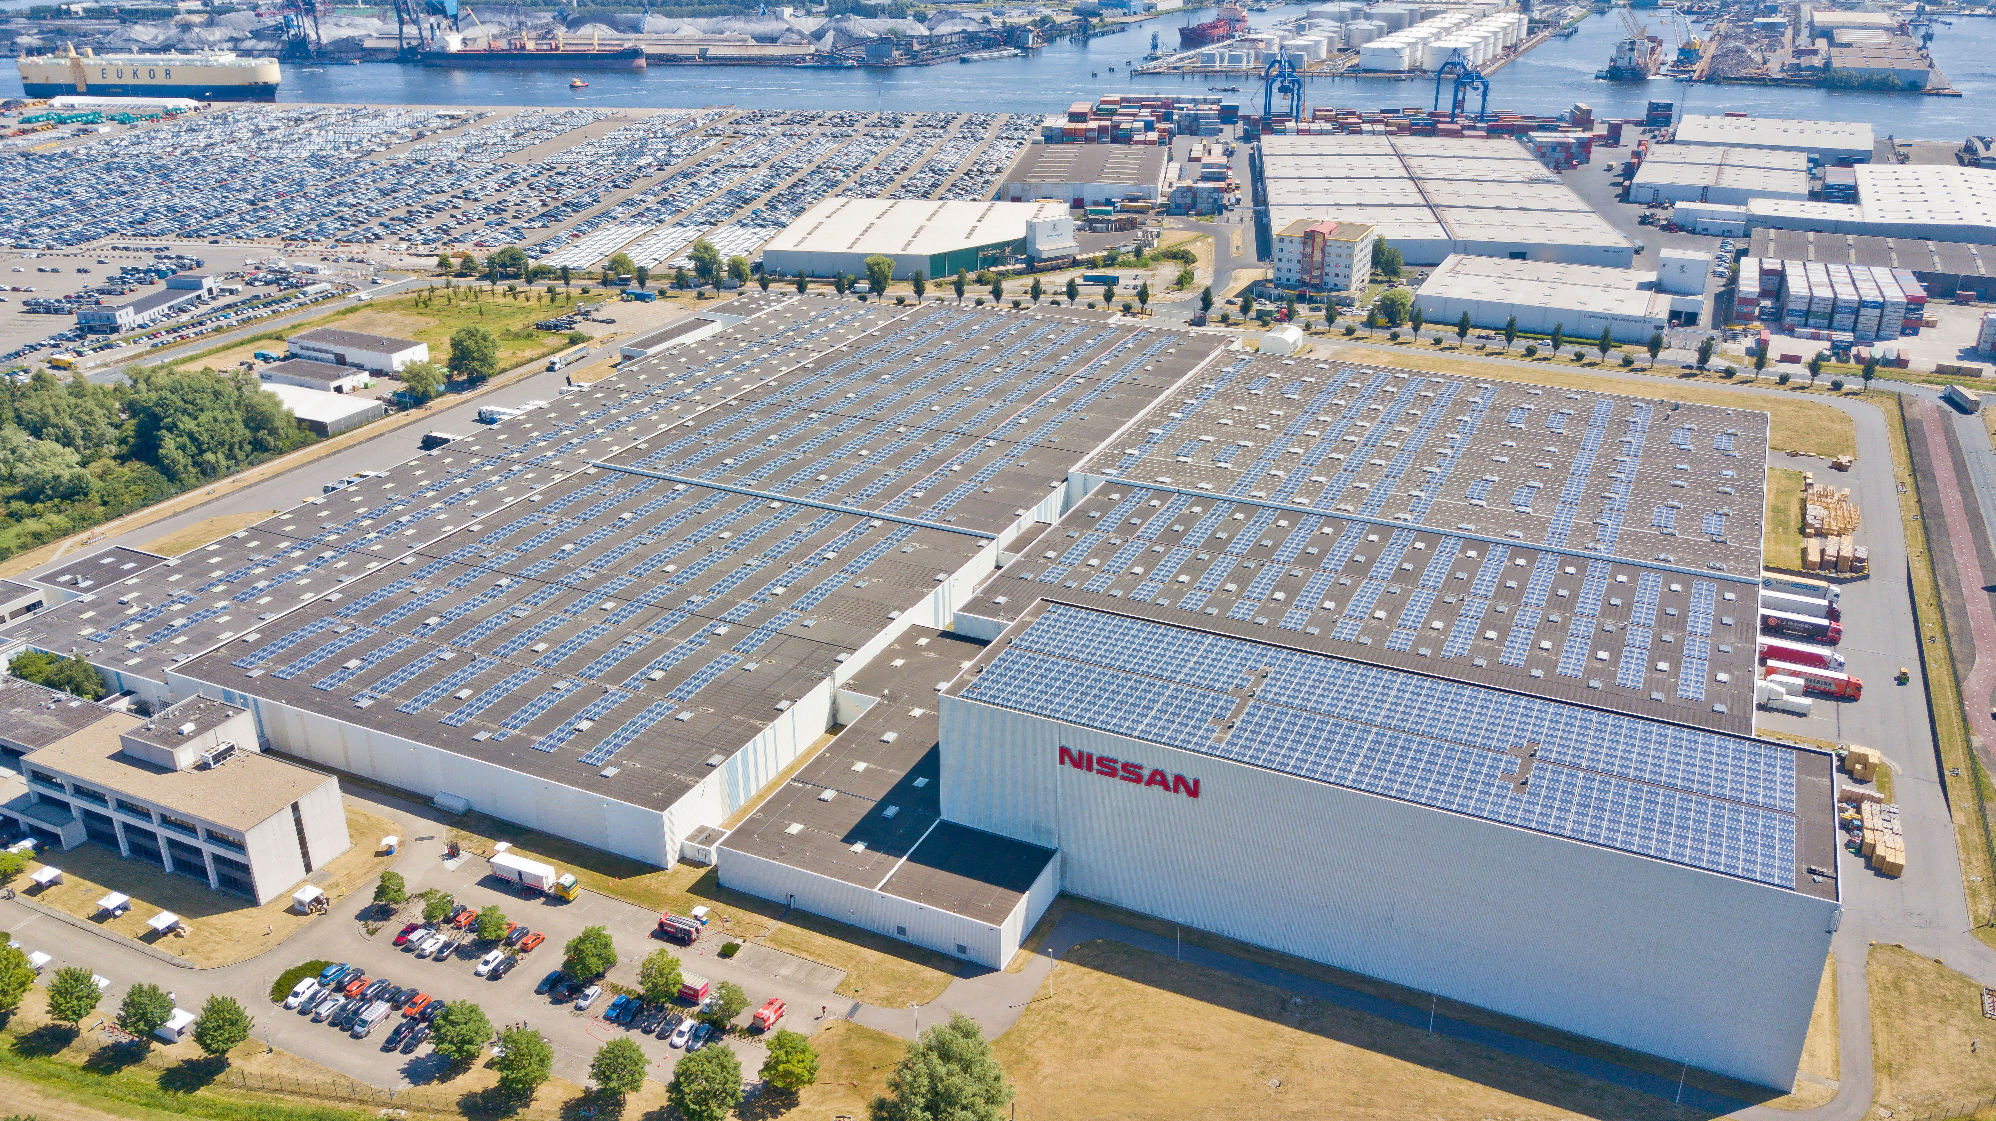 EMBARGO Dec 18th 10 am CET Solar roof installed at Nissan Motor Parts Center5-source